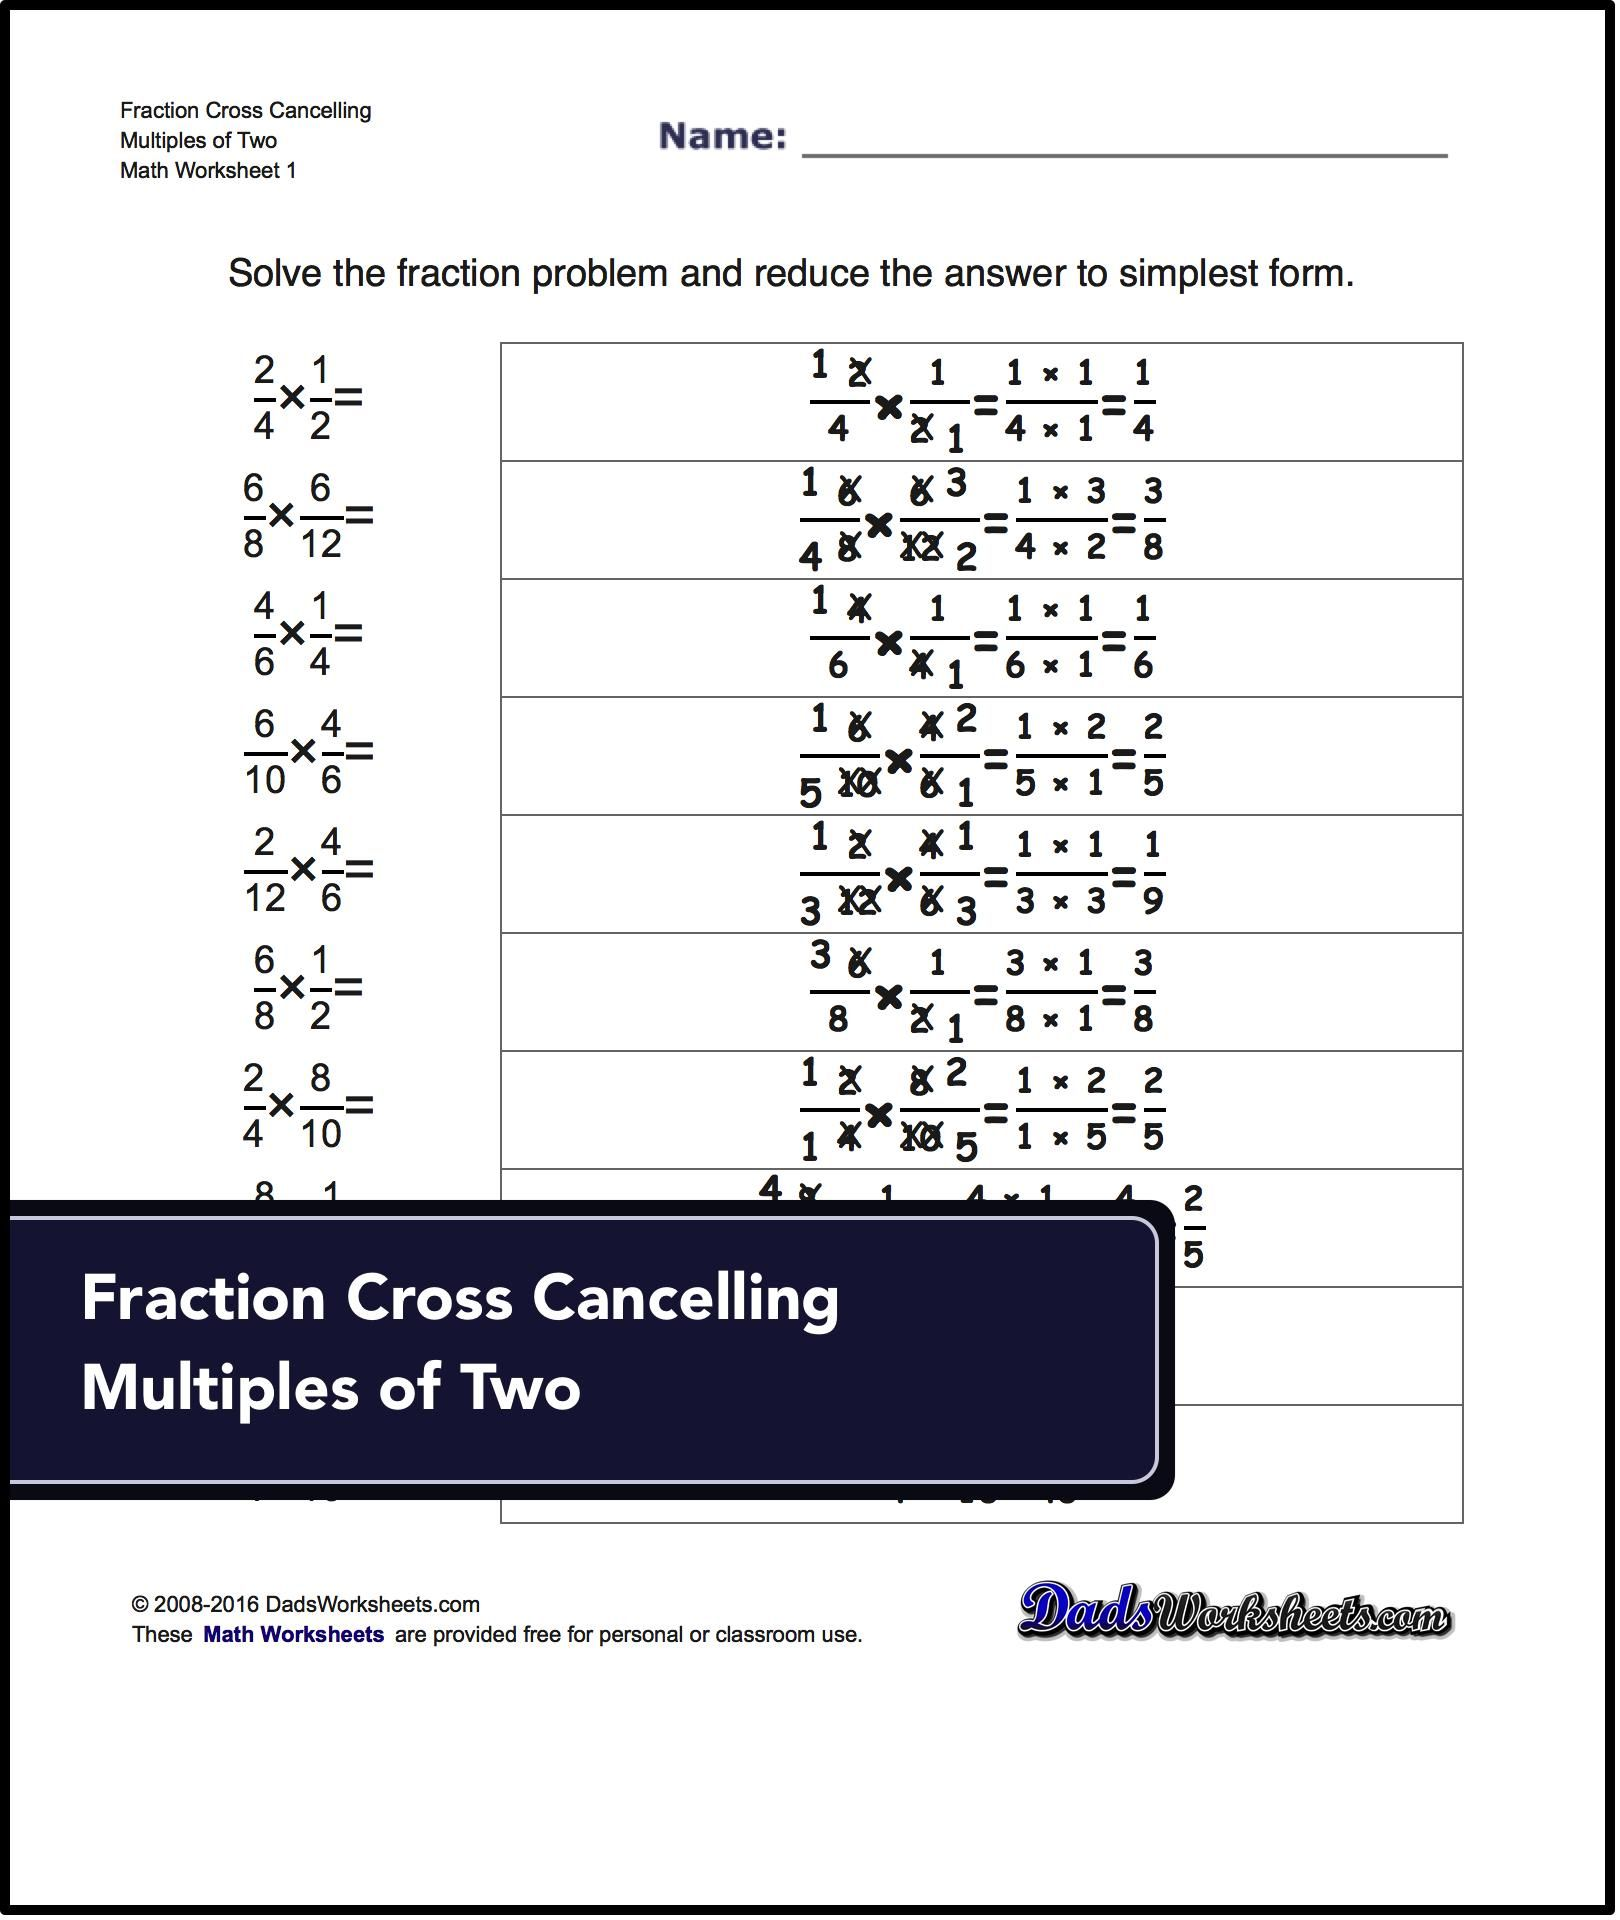 Worksheets Cooking Math Worksheets multiplying fractions worksheets fraction multiplication with a math worksheets